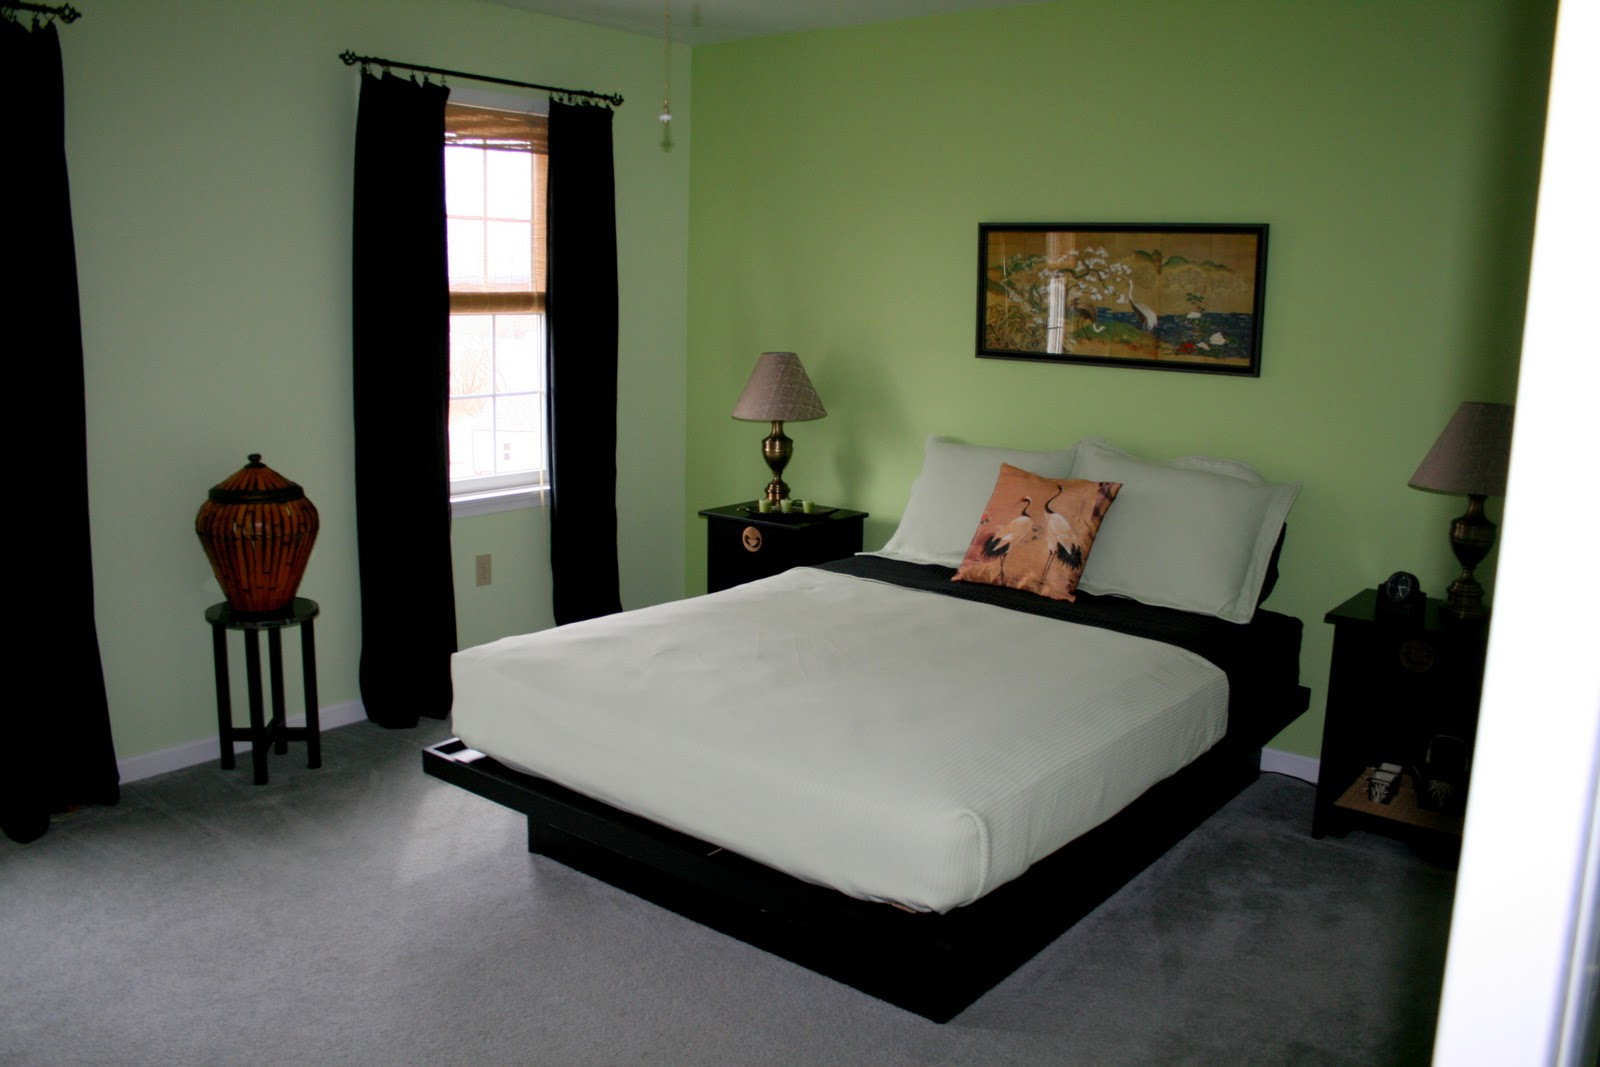 green bedroom walls with black furniture